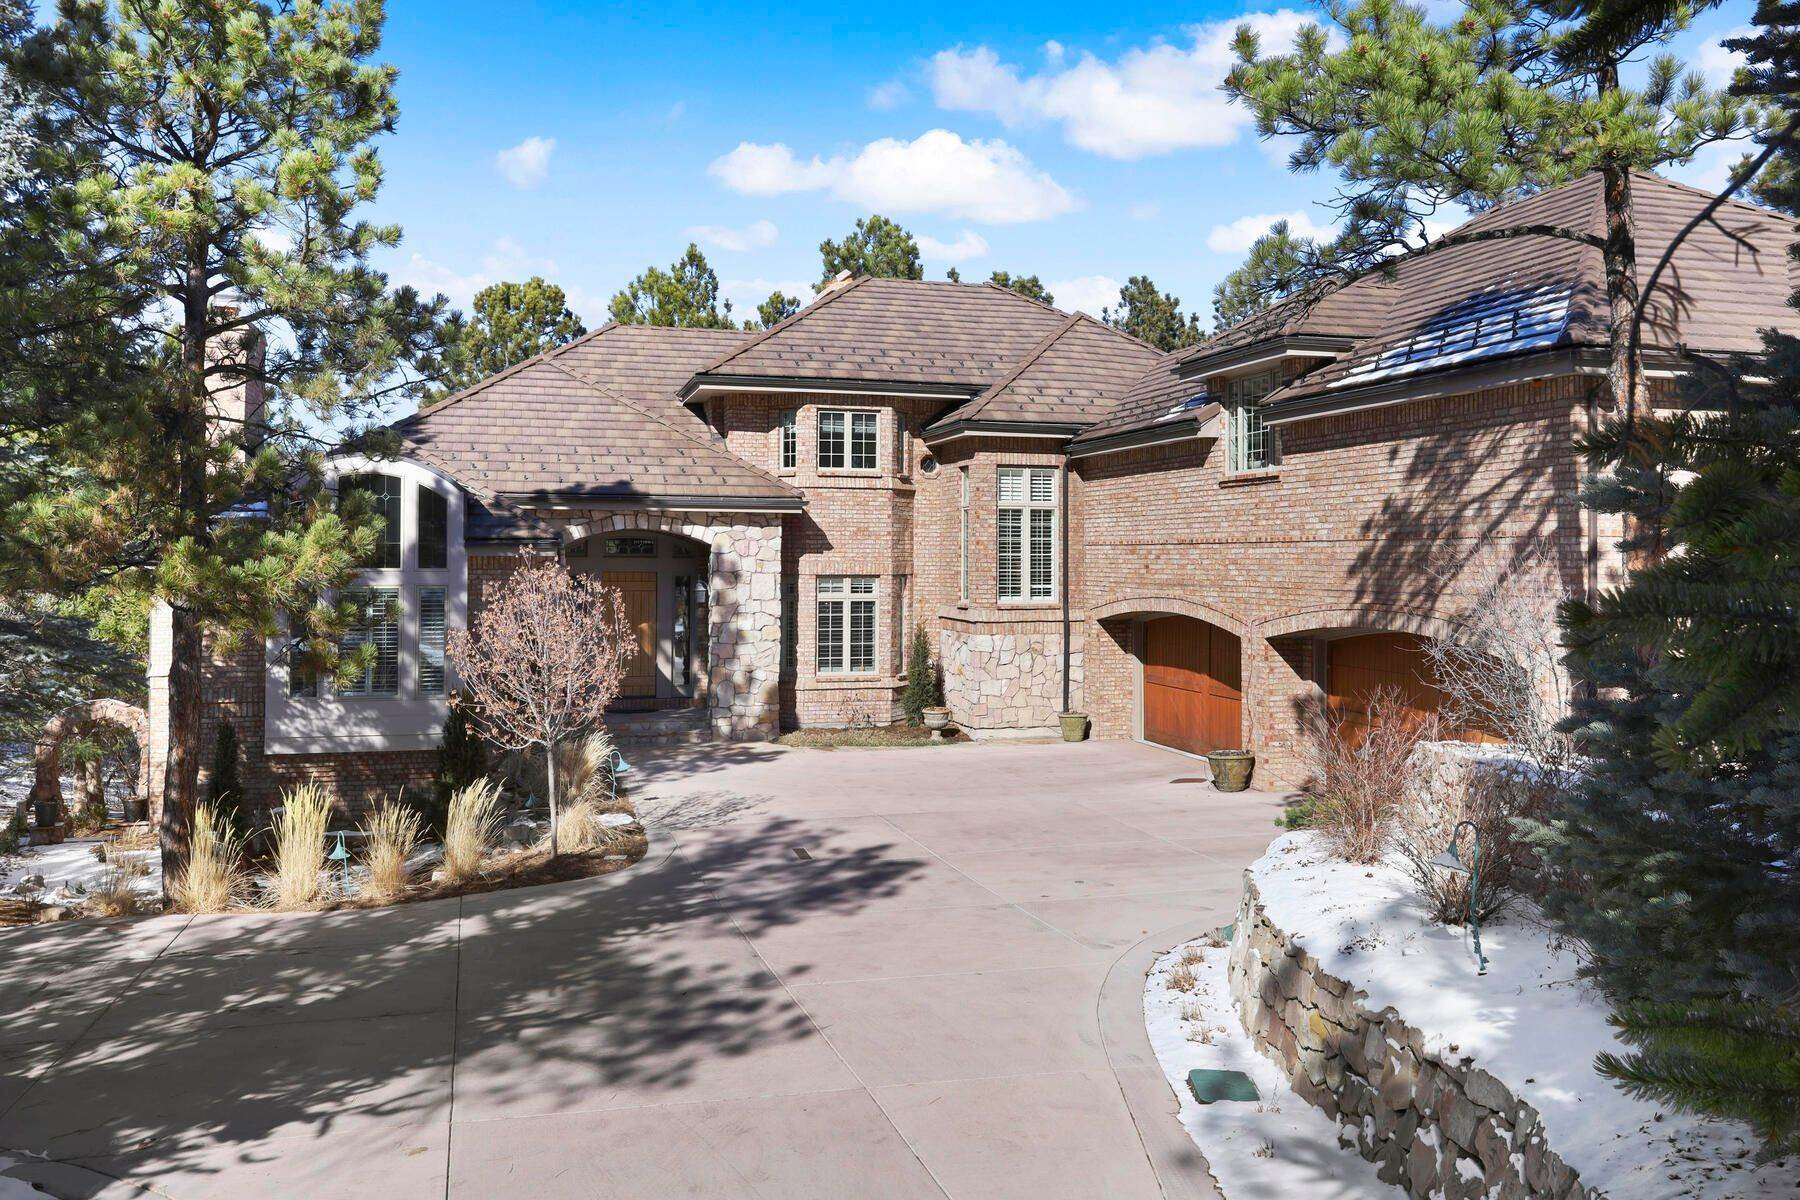 Property for Active at 337 Tamasoa Place, Castle Rock, Co, 80108 337 Tamasoa Place Castle Rock, Colorado 80108 United States